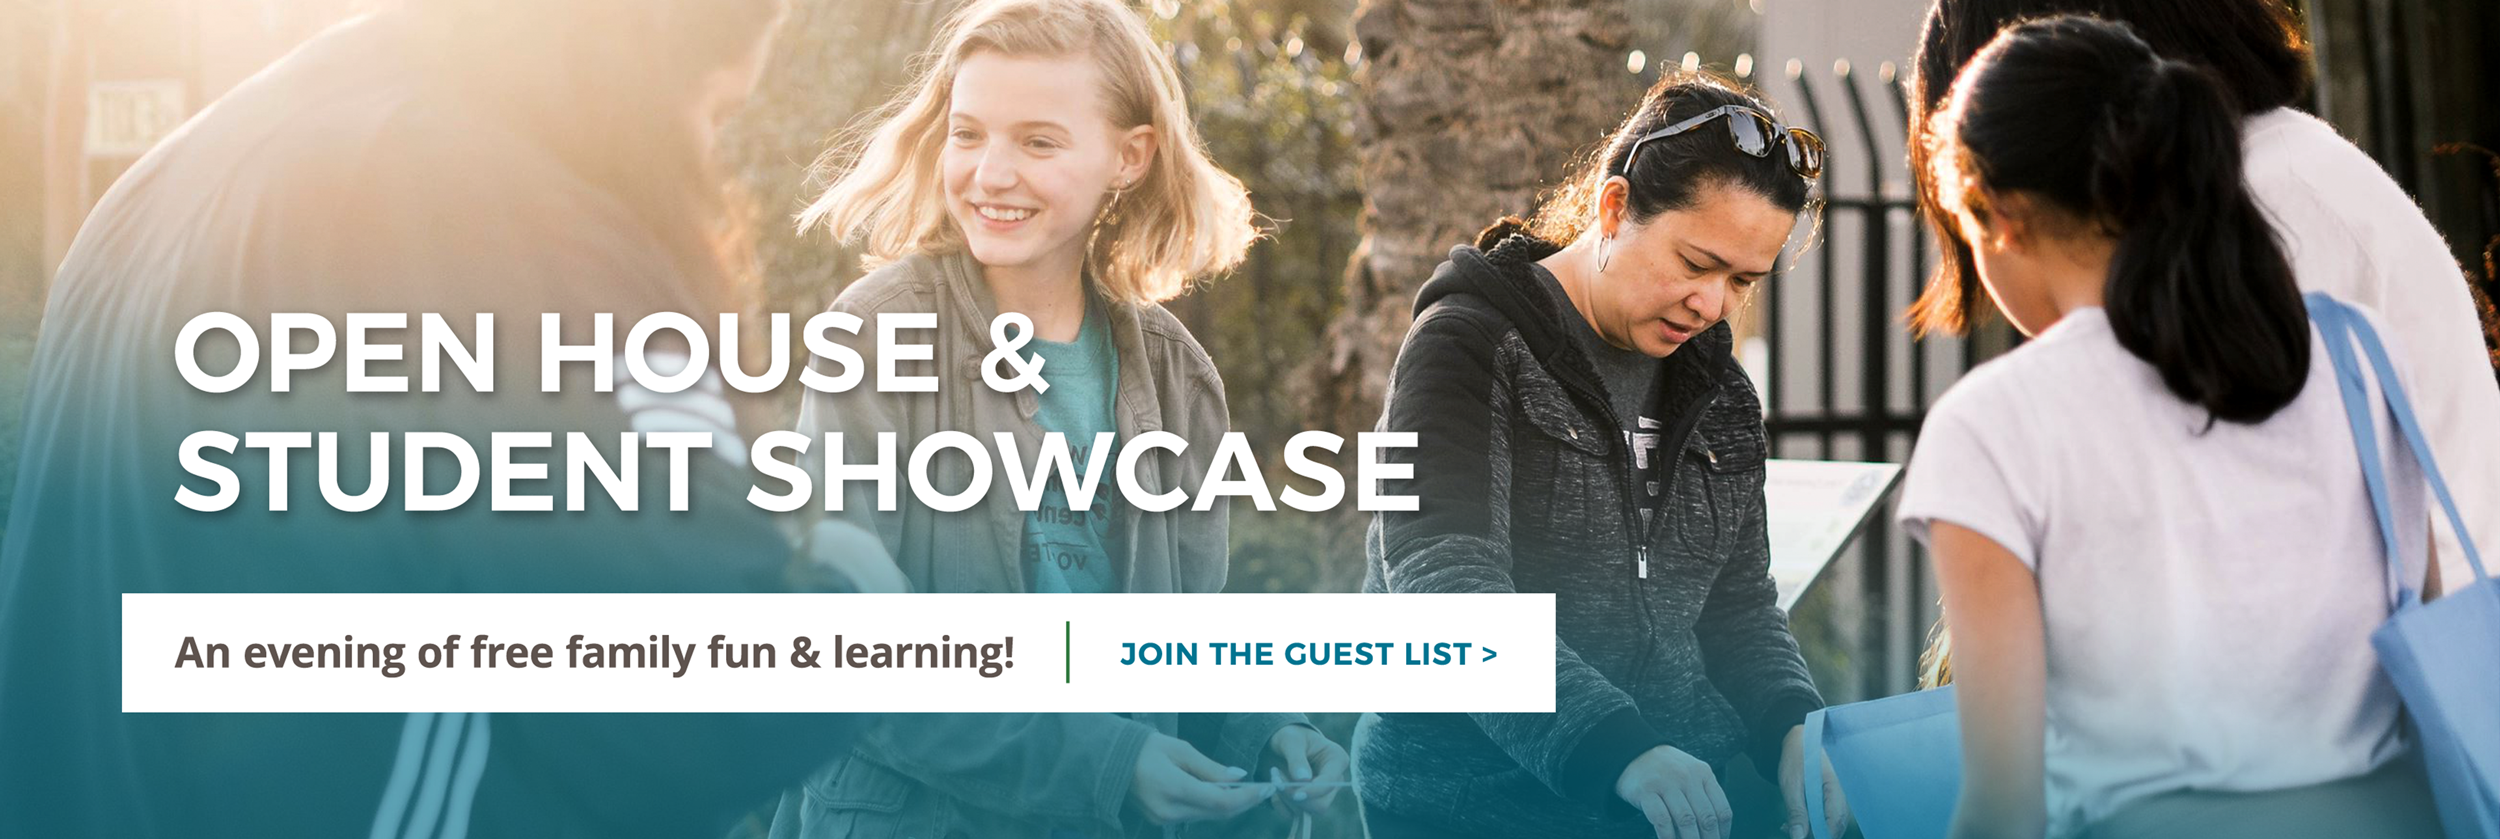 Open House & Student Showcase. Click here to join the guest list.